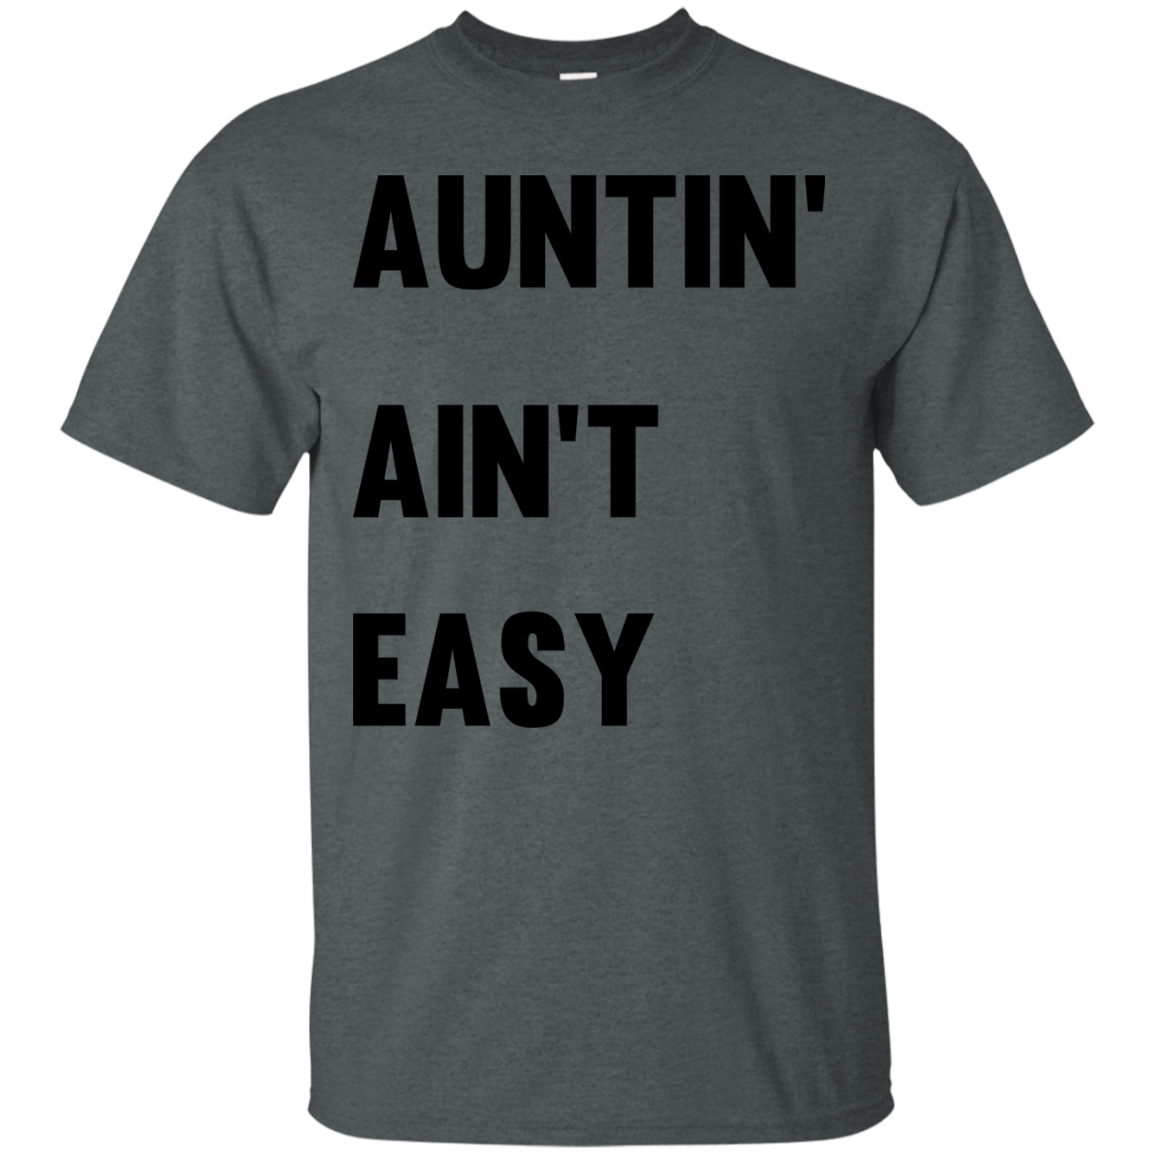 image 207px Aunt Shirt: Auntin' Ain't Easy T Shirts, Hoodies, Long Sleeves